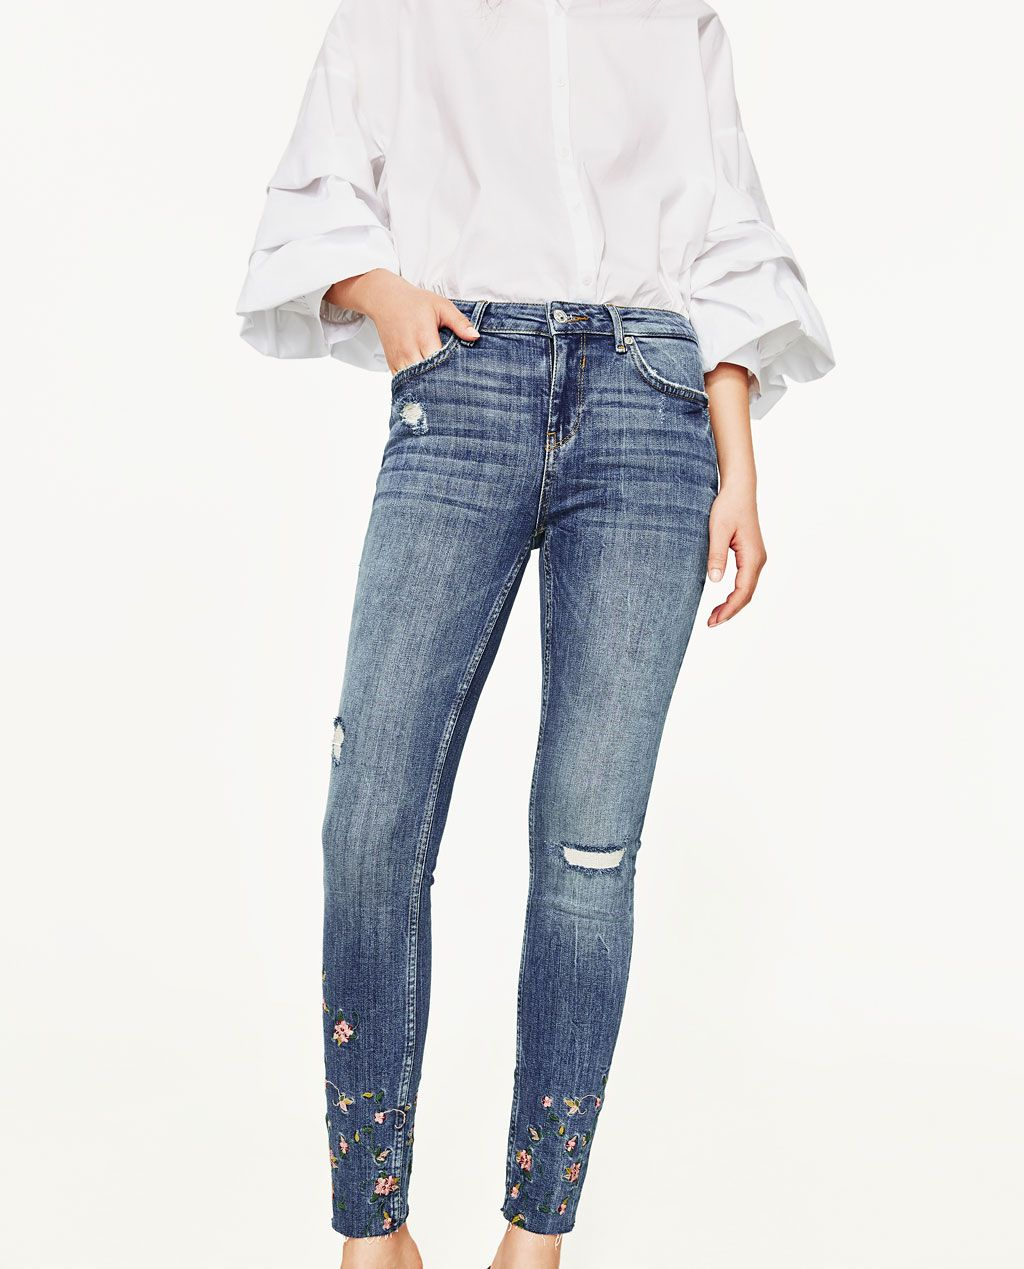 8608a8a7b24 MID-RISE JEANS WITH EMBROIDERED FLOWERS-Skinny-JEANS-WOMAN